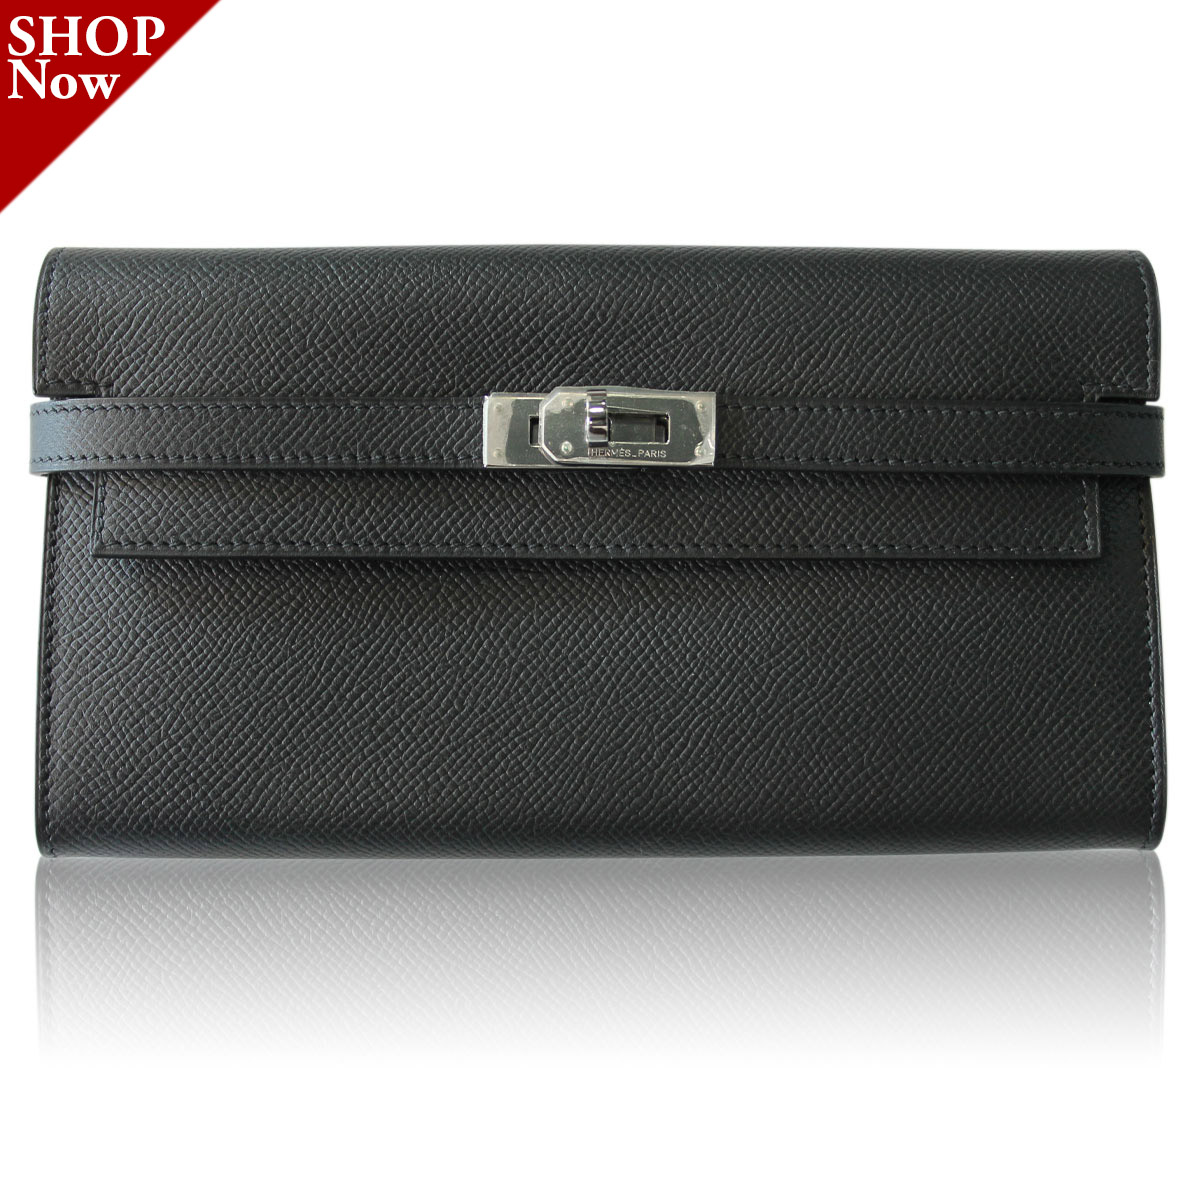 Hermes Black Epsom Kelly Wallet Boca Raton in Box